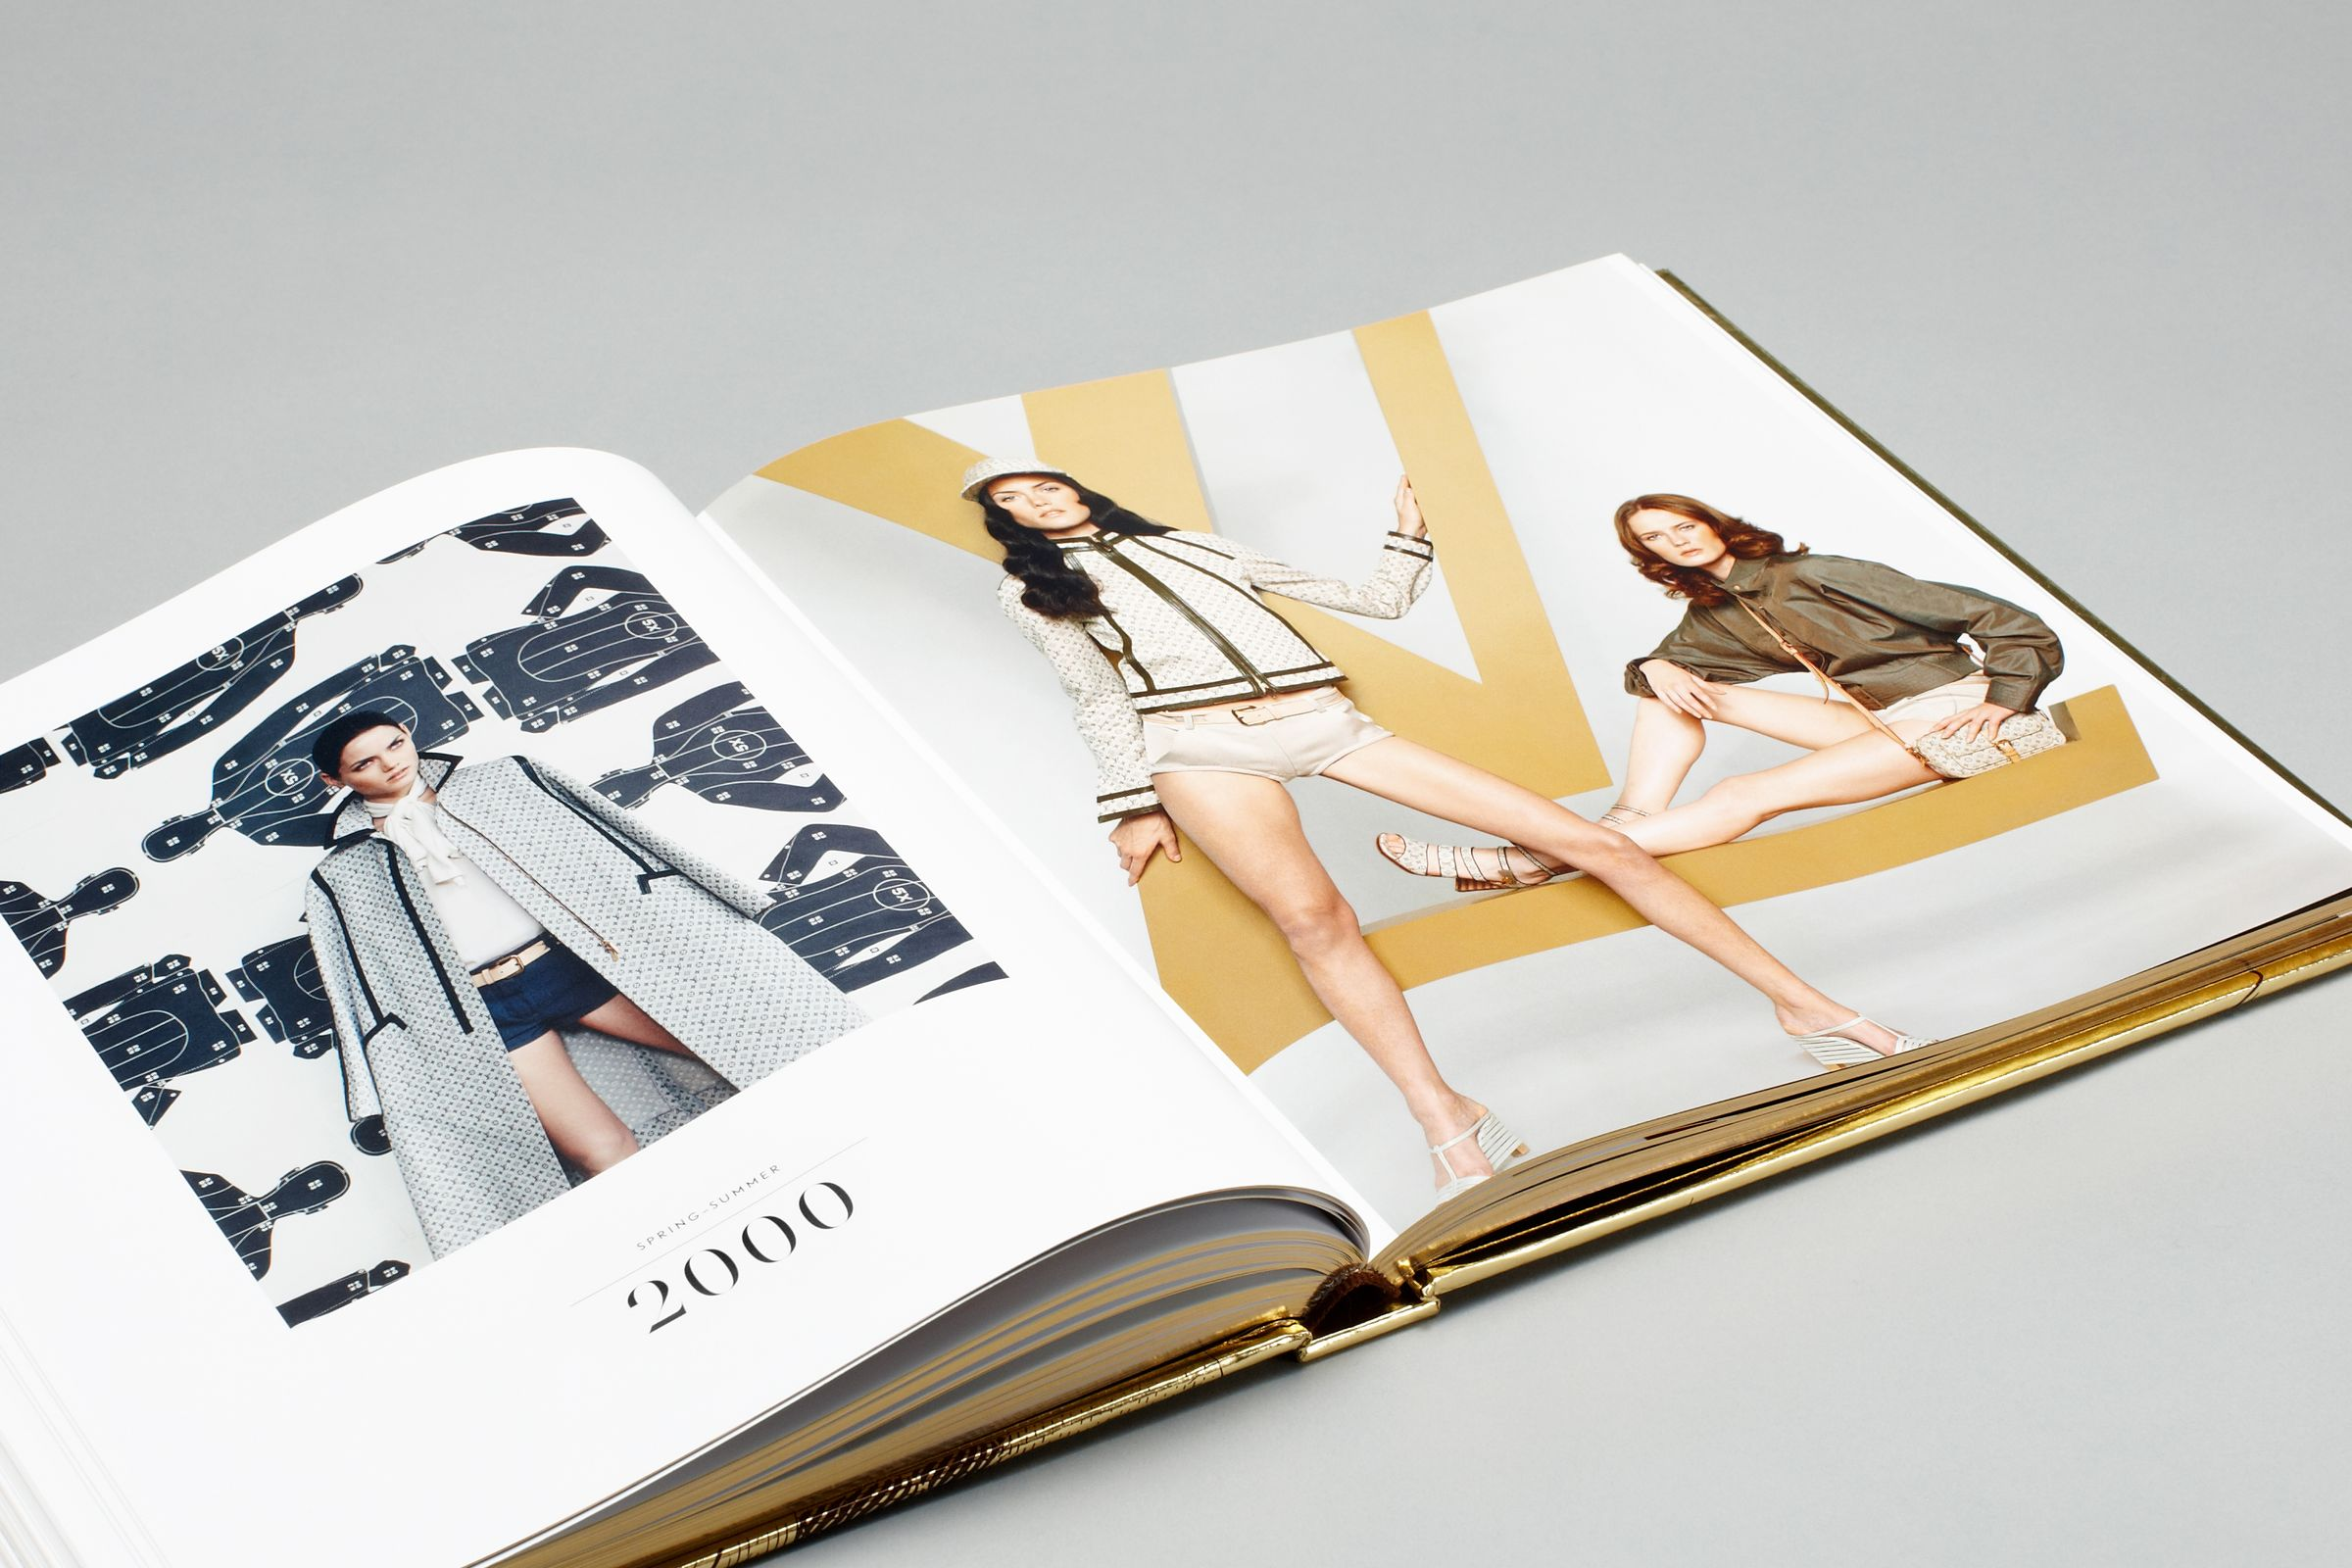 Spread layout design from Louis Vuitton Marc Jacobs book